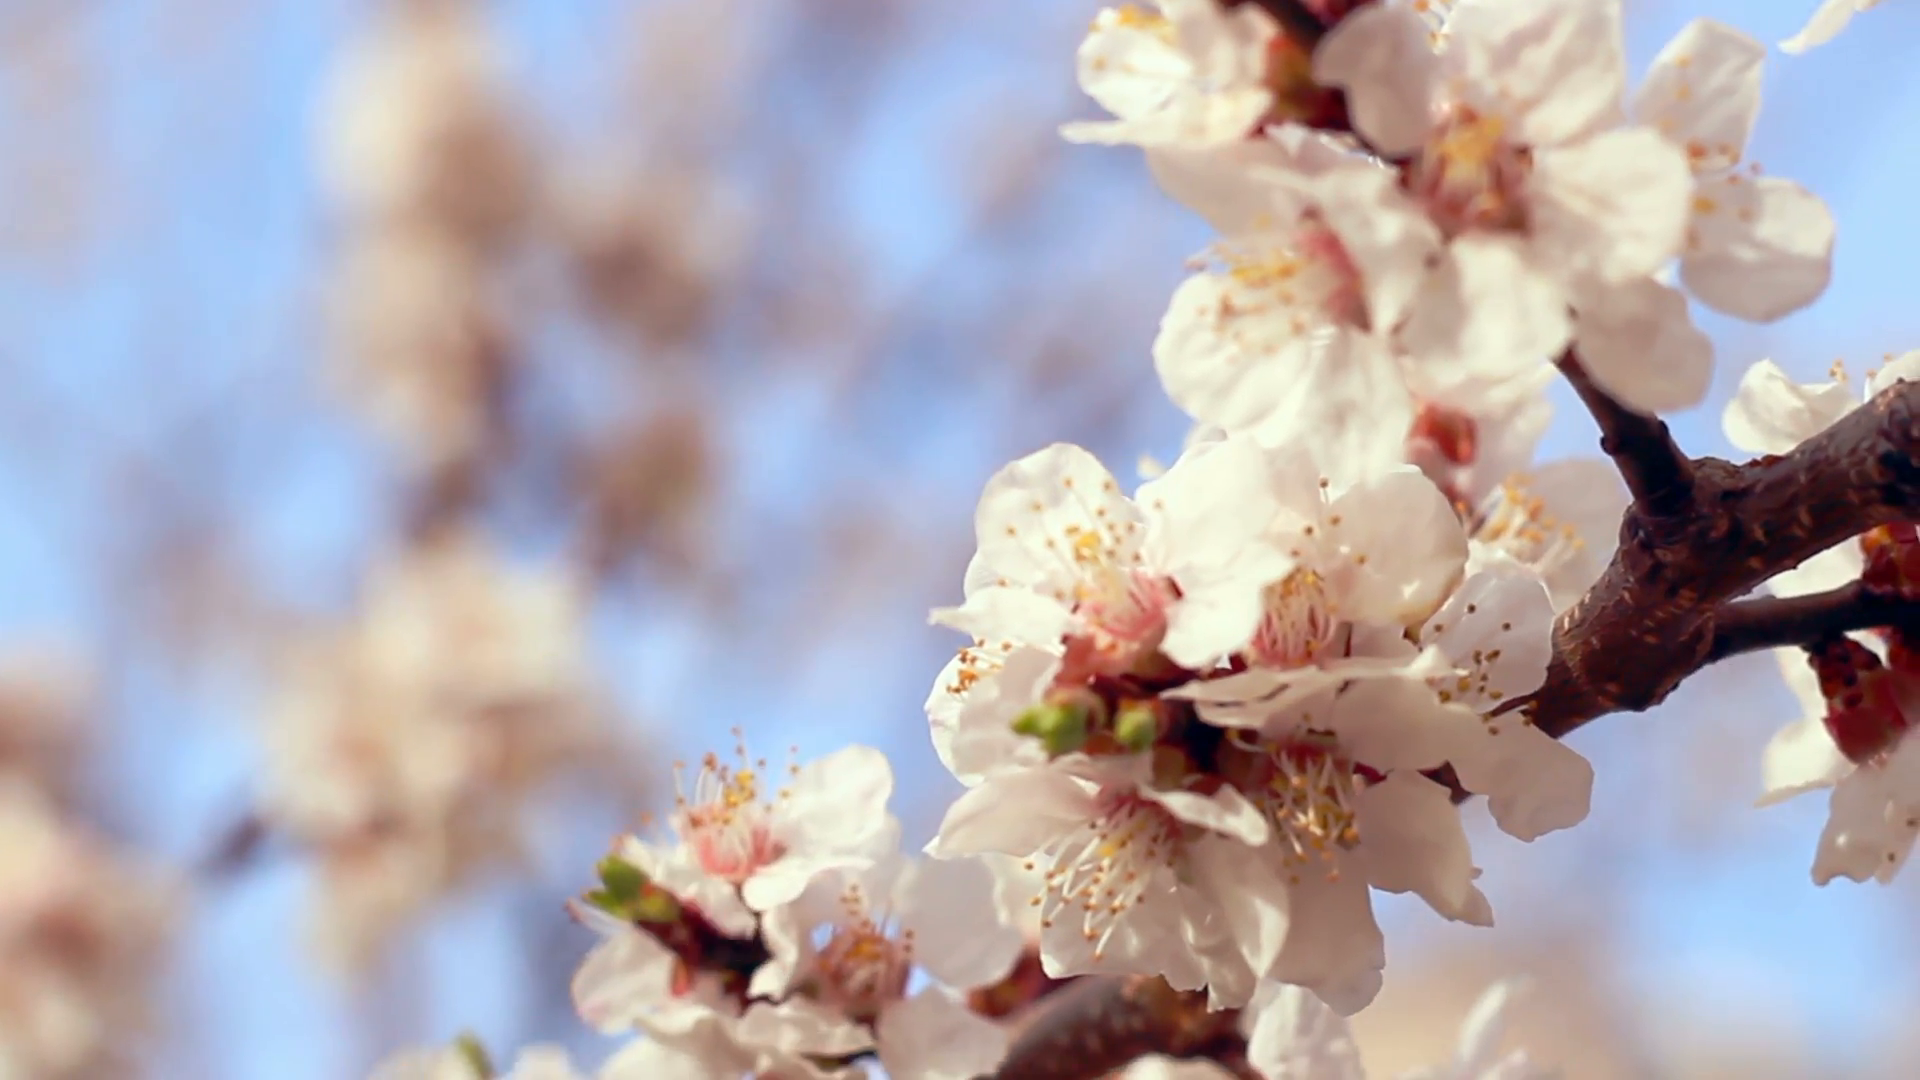 Png Tree With White And Pink Flowers - Apricot blossom. Closeup. Apricot flowers on branch of apricot ...